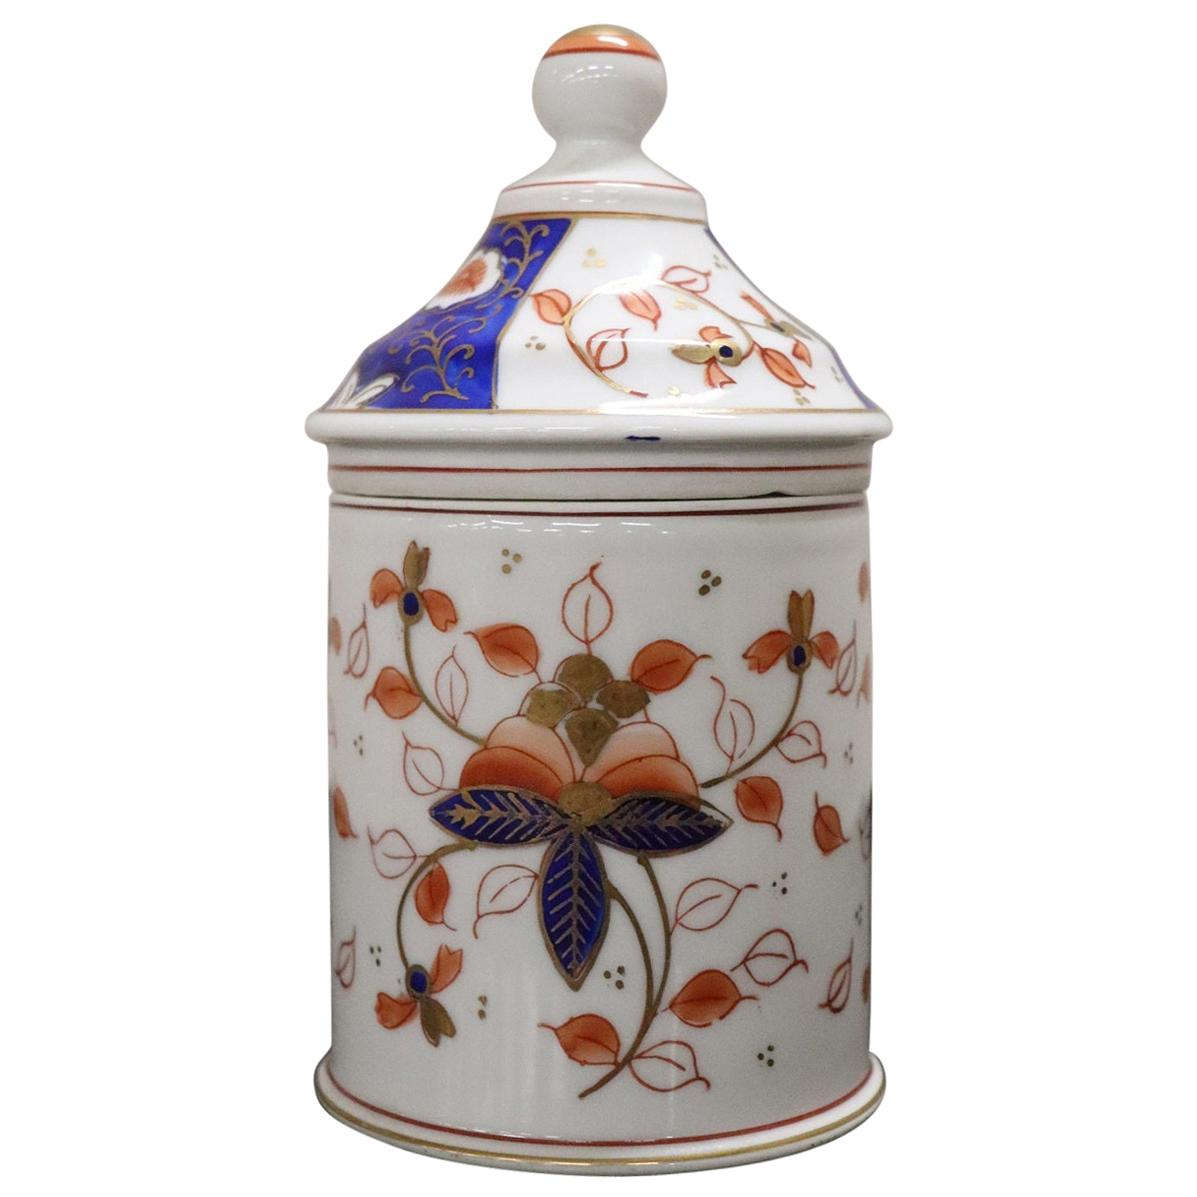 20th Century Japanese Artistic Jar in Hand Painted Porcelain